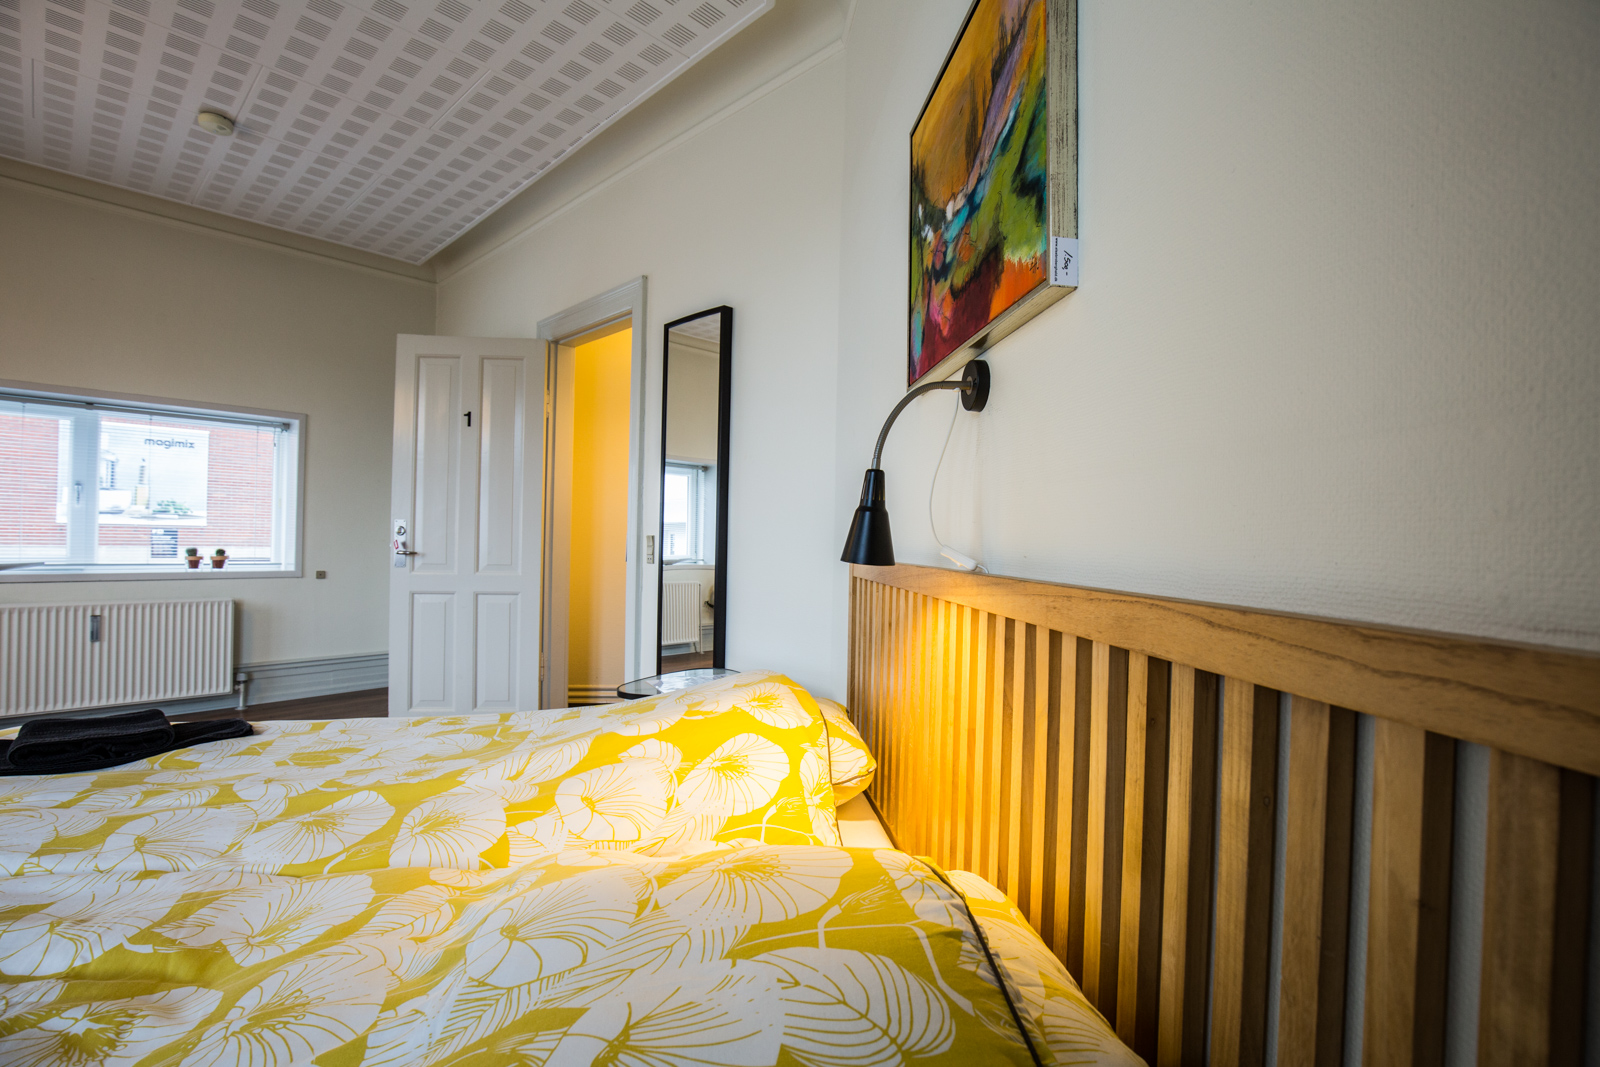 Bed and Breakfast Holstebro seng